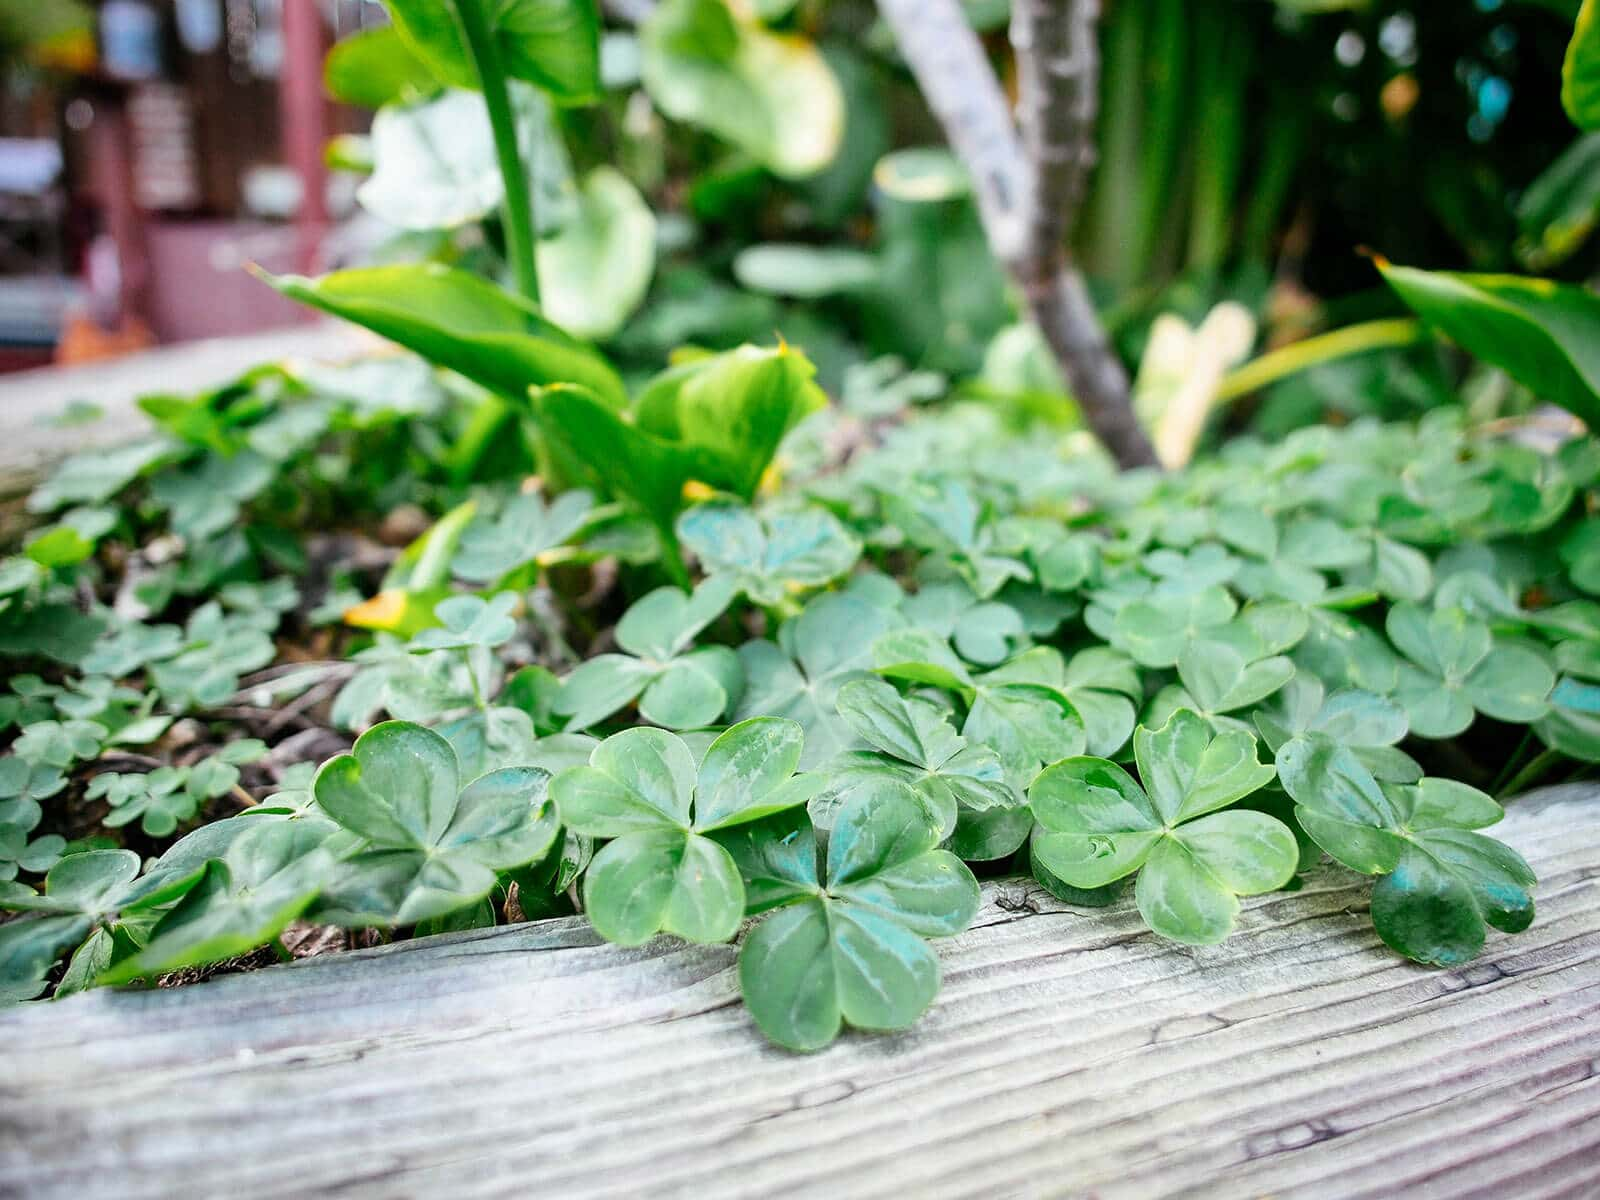 Wood sorrel (oxalis) makes an excellent edible ground cover for shady vegetable gardens